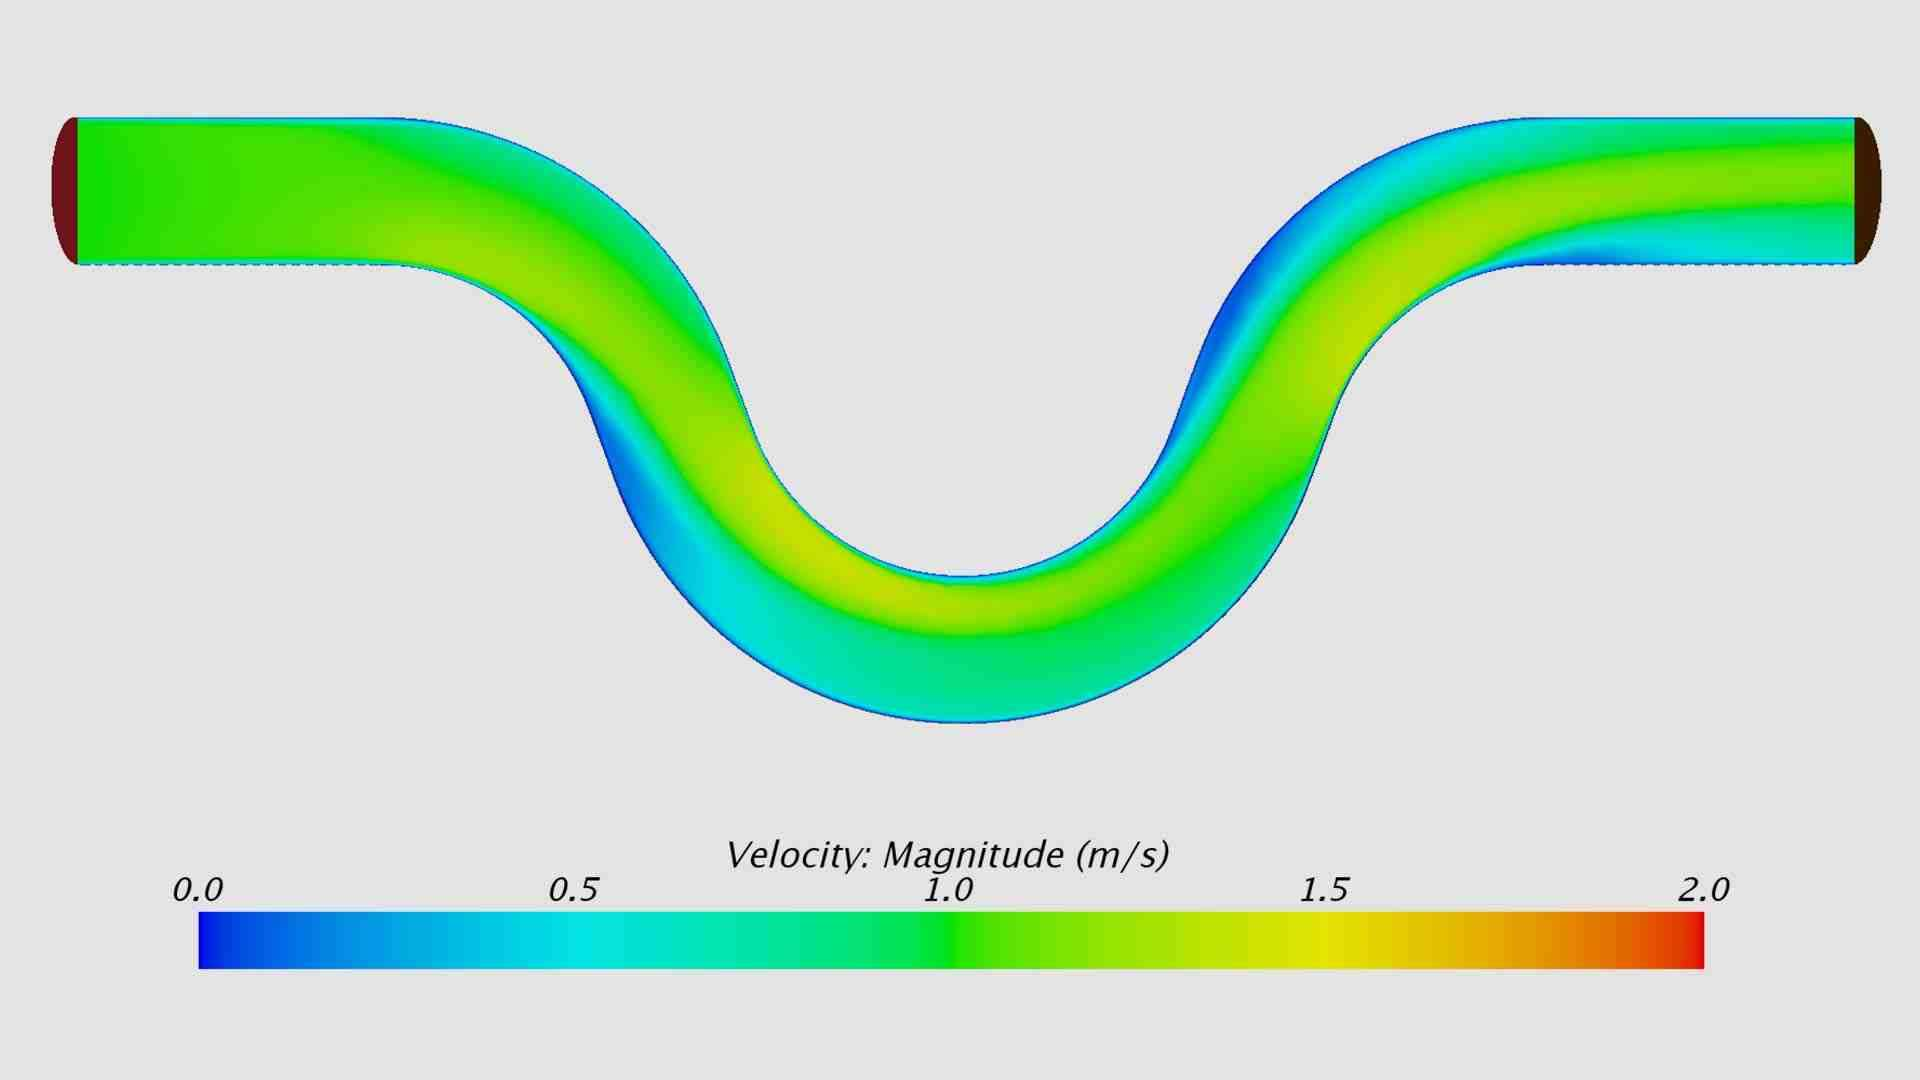 A heatmap diagram of the flow of liquid through a series of smooth bends